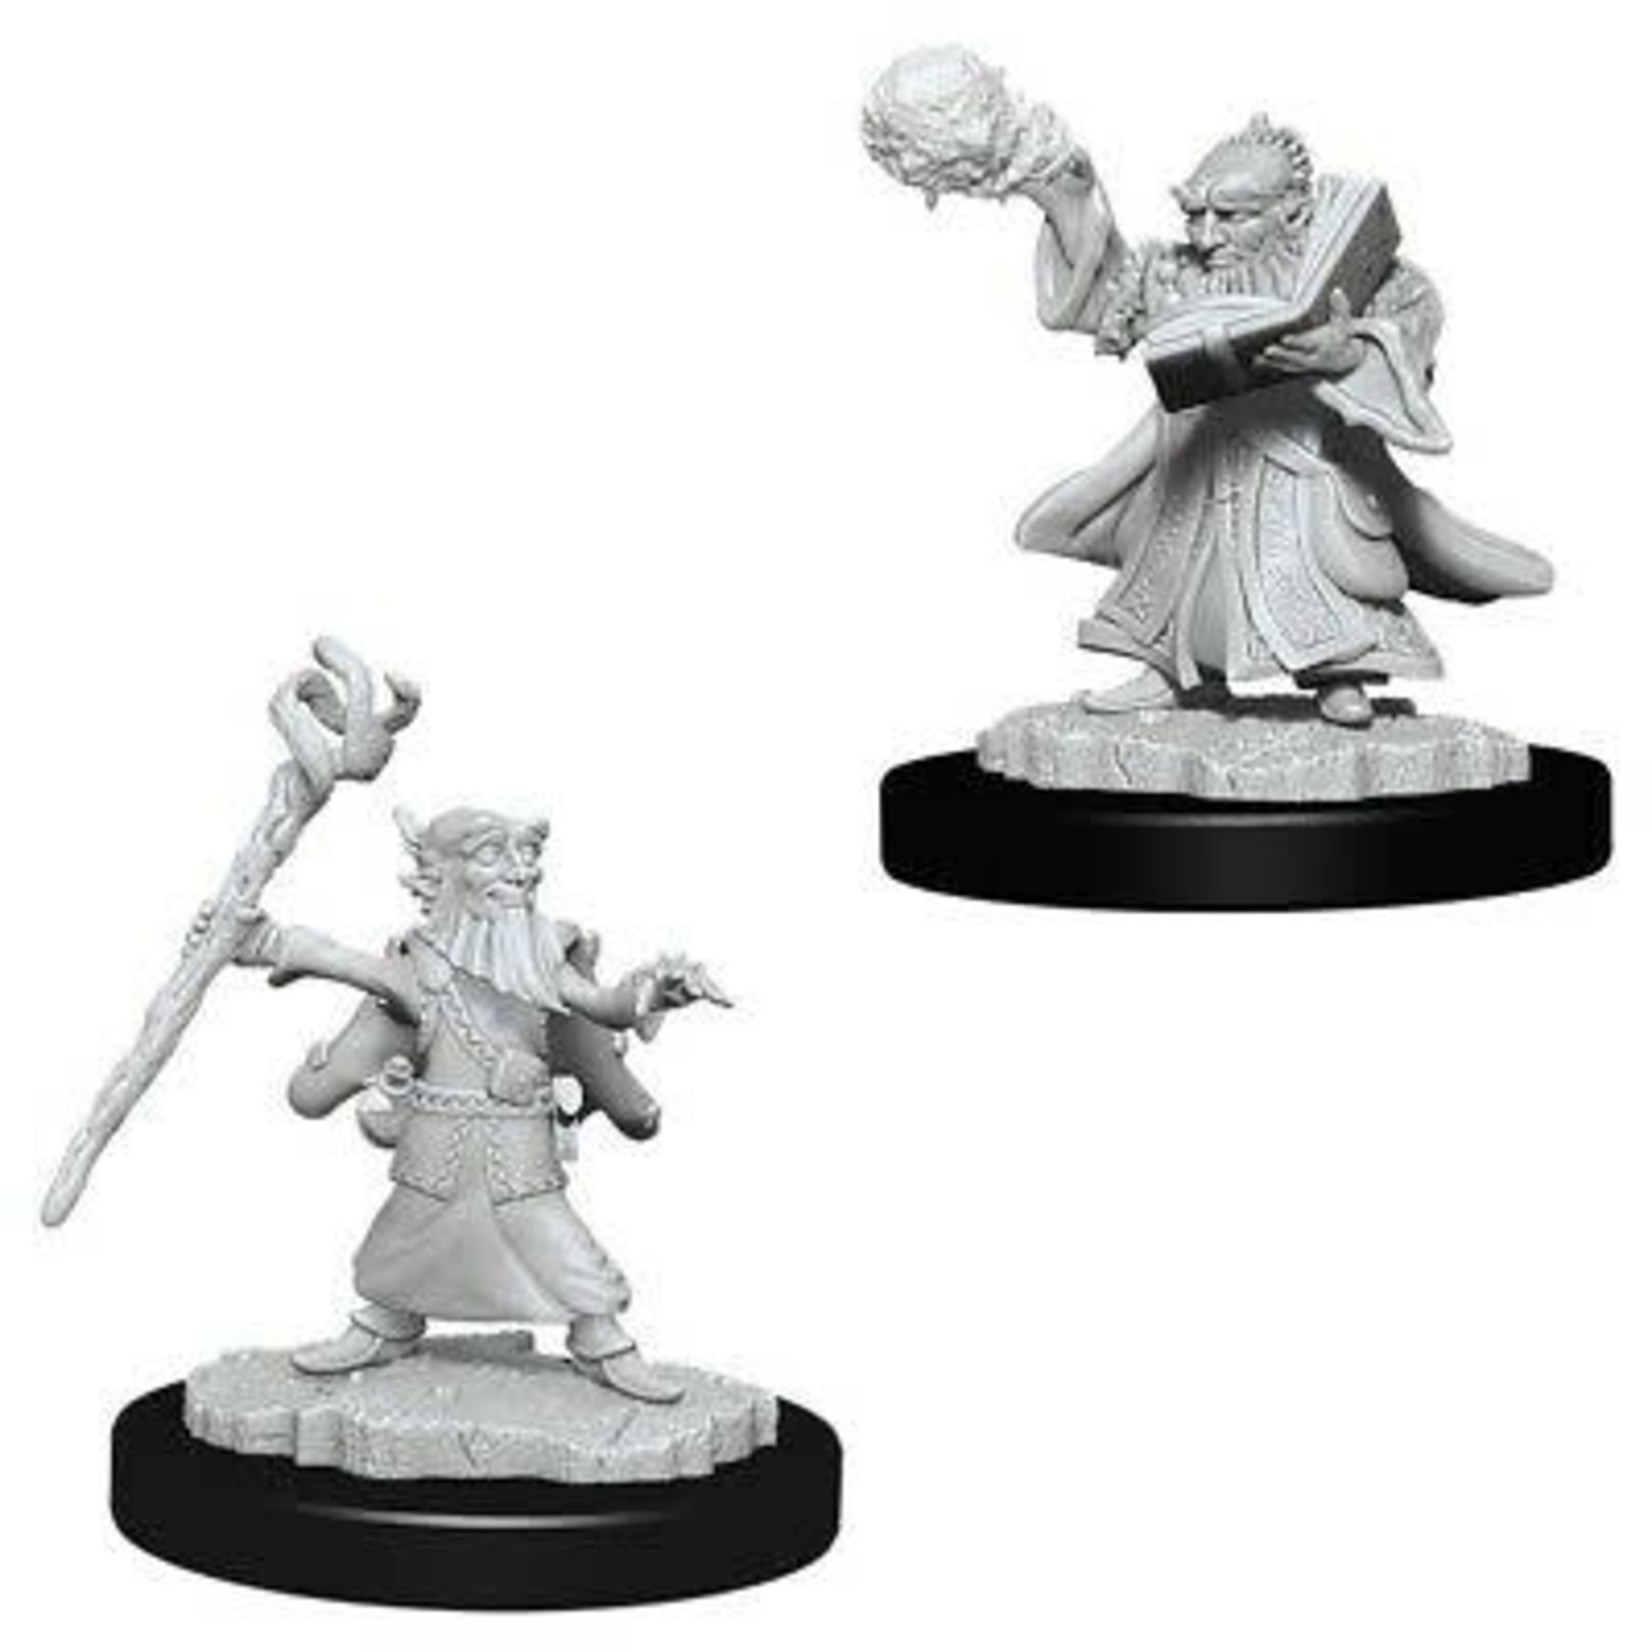 WizKids Dungeons & Dragons Nolzur's Marvelous Miniatures: Male Gnome Wizard